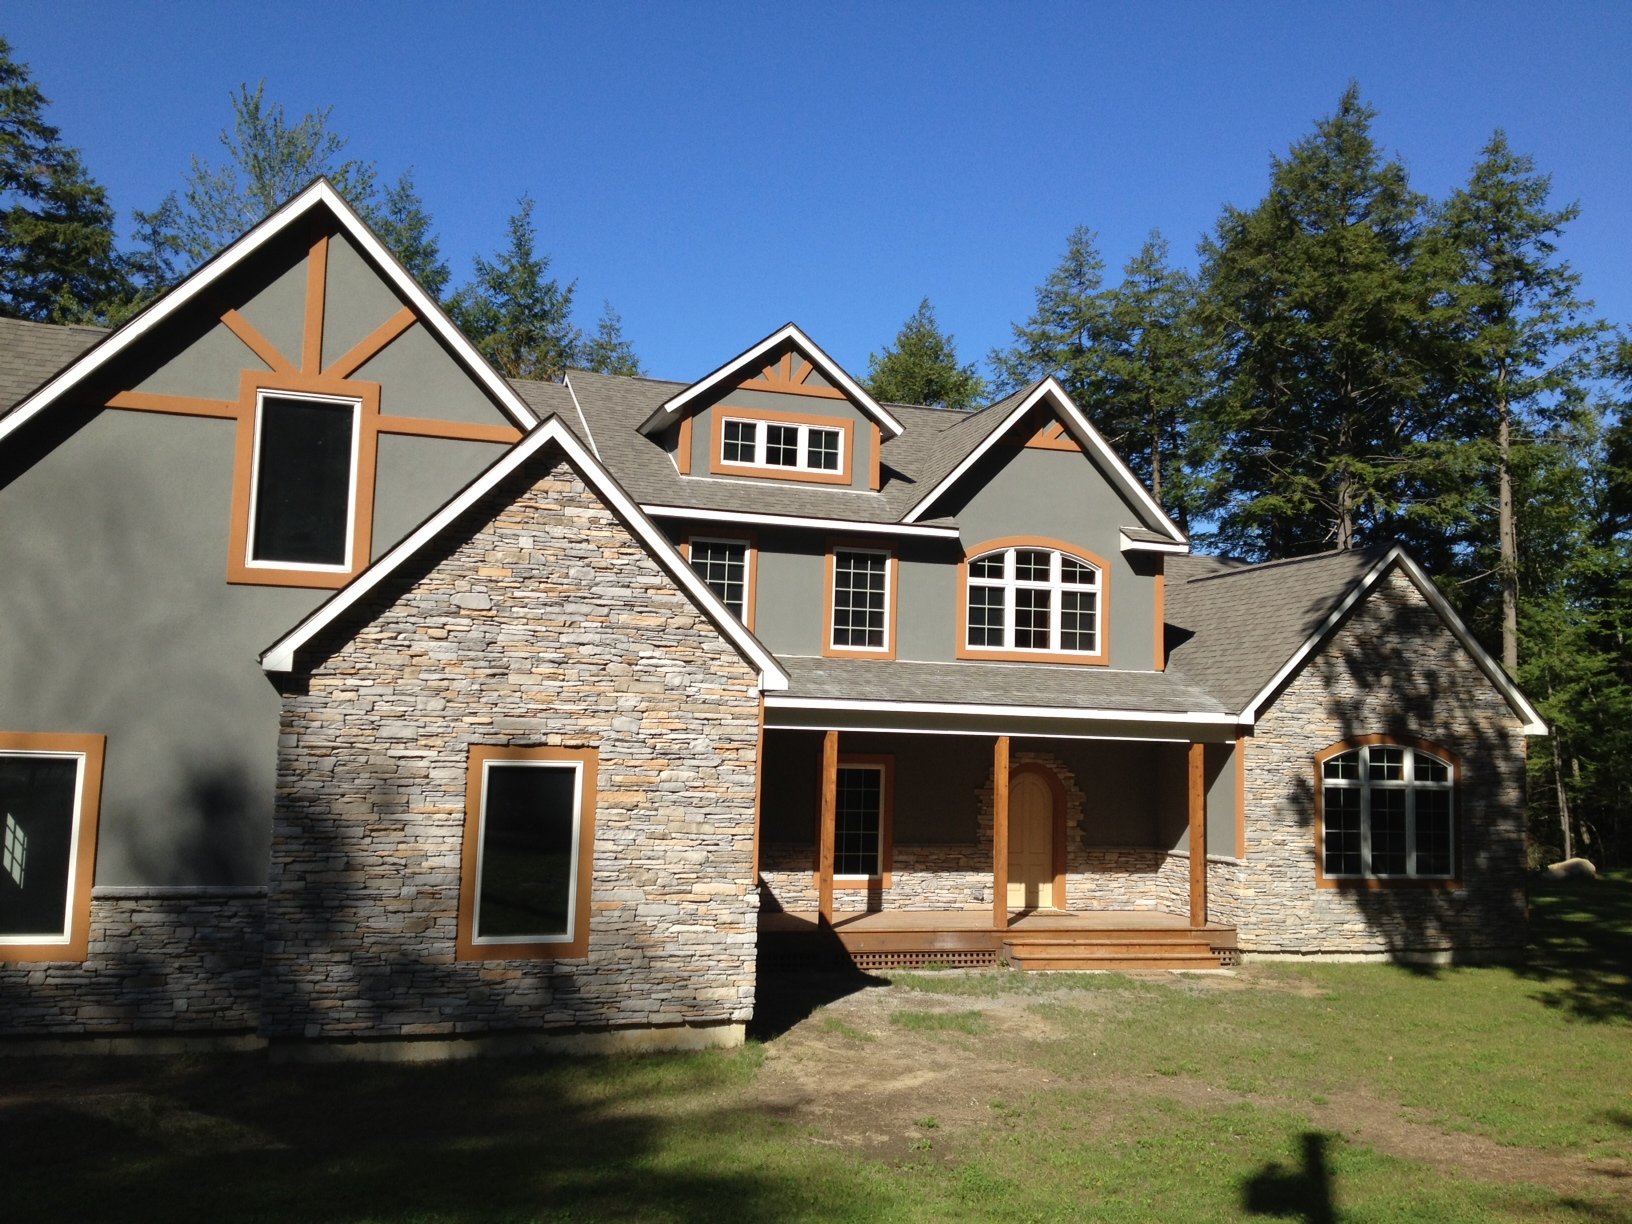 Custom modular homes saratoga construction llc Building custom home cost